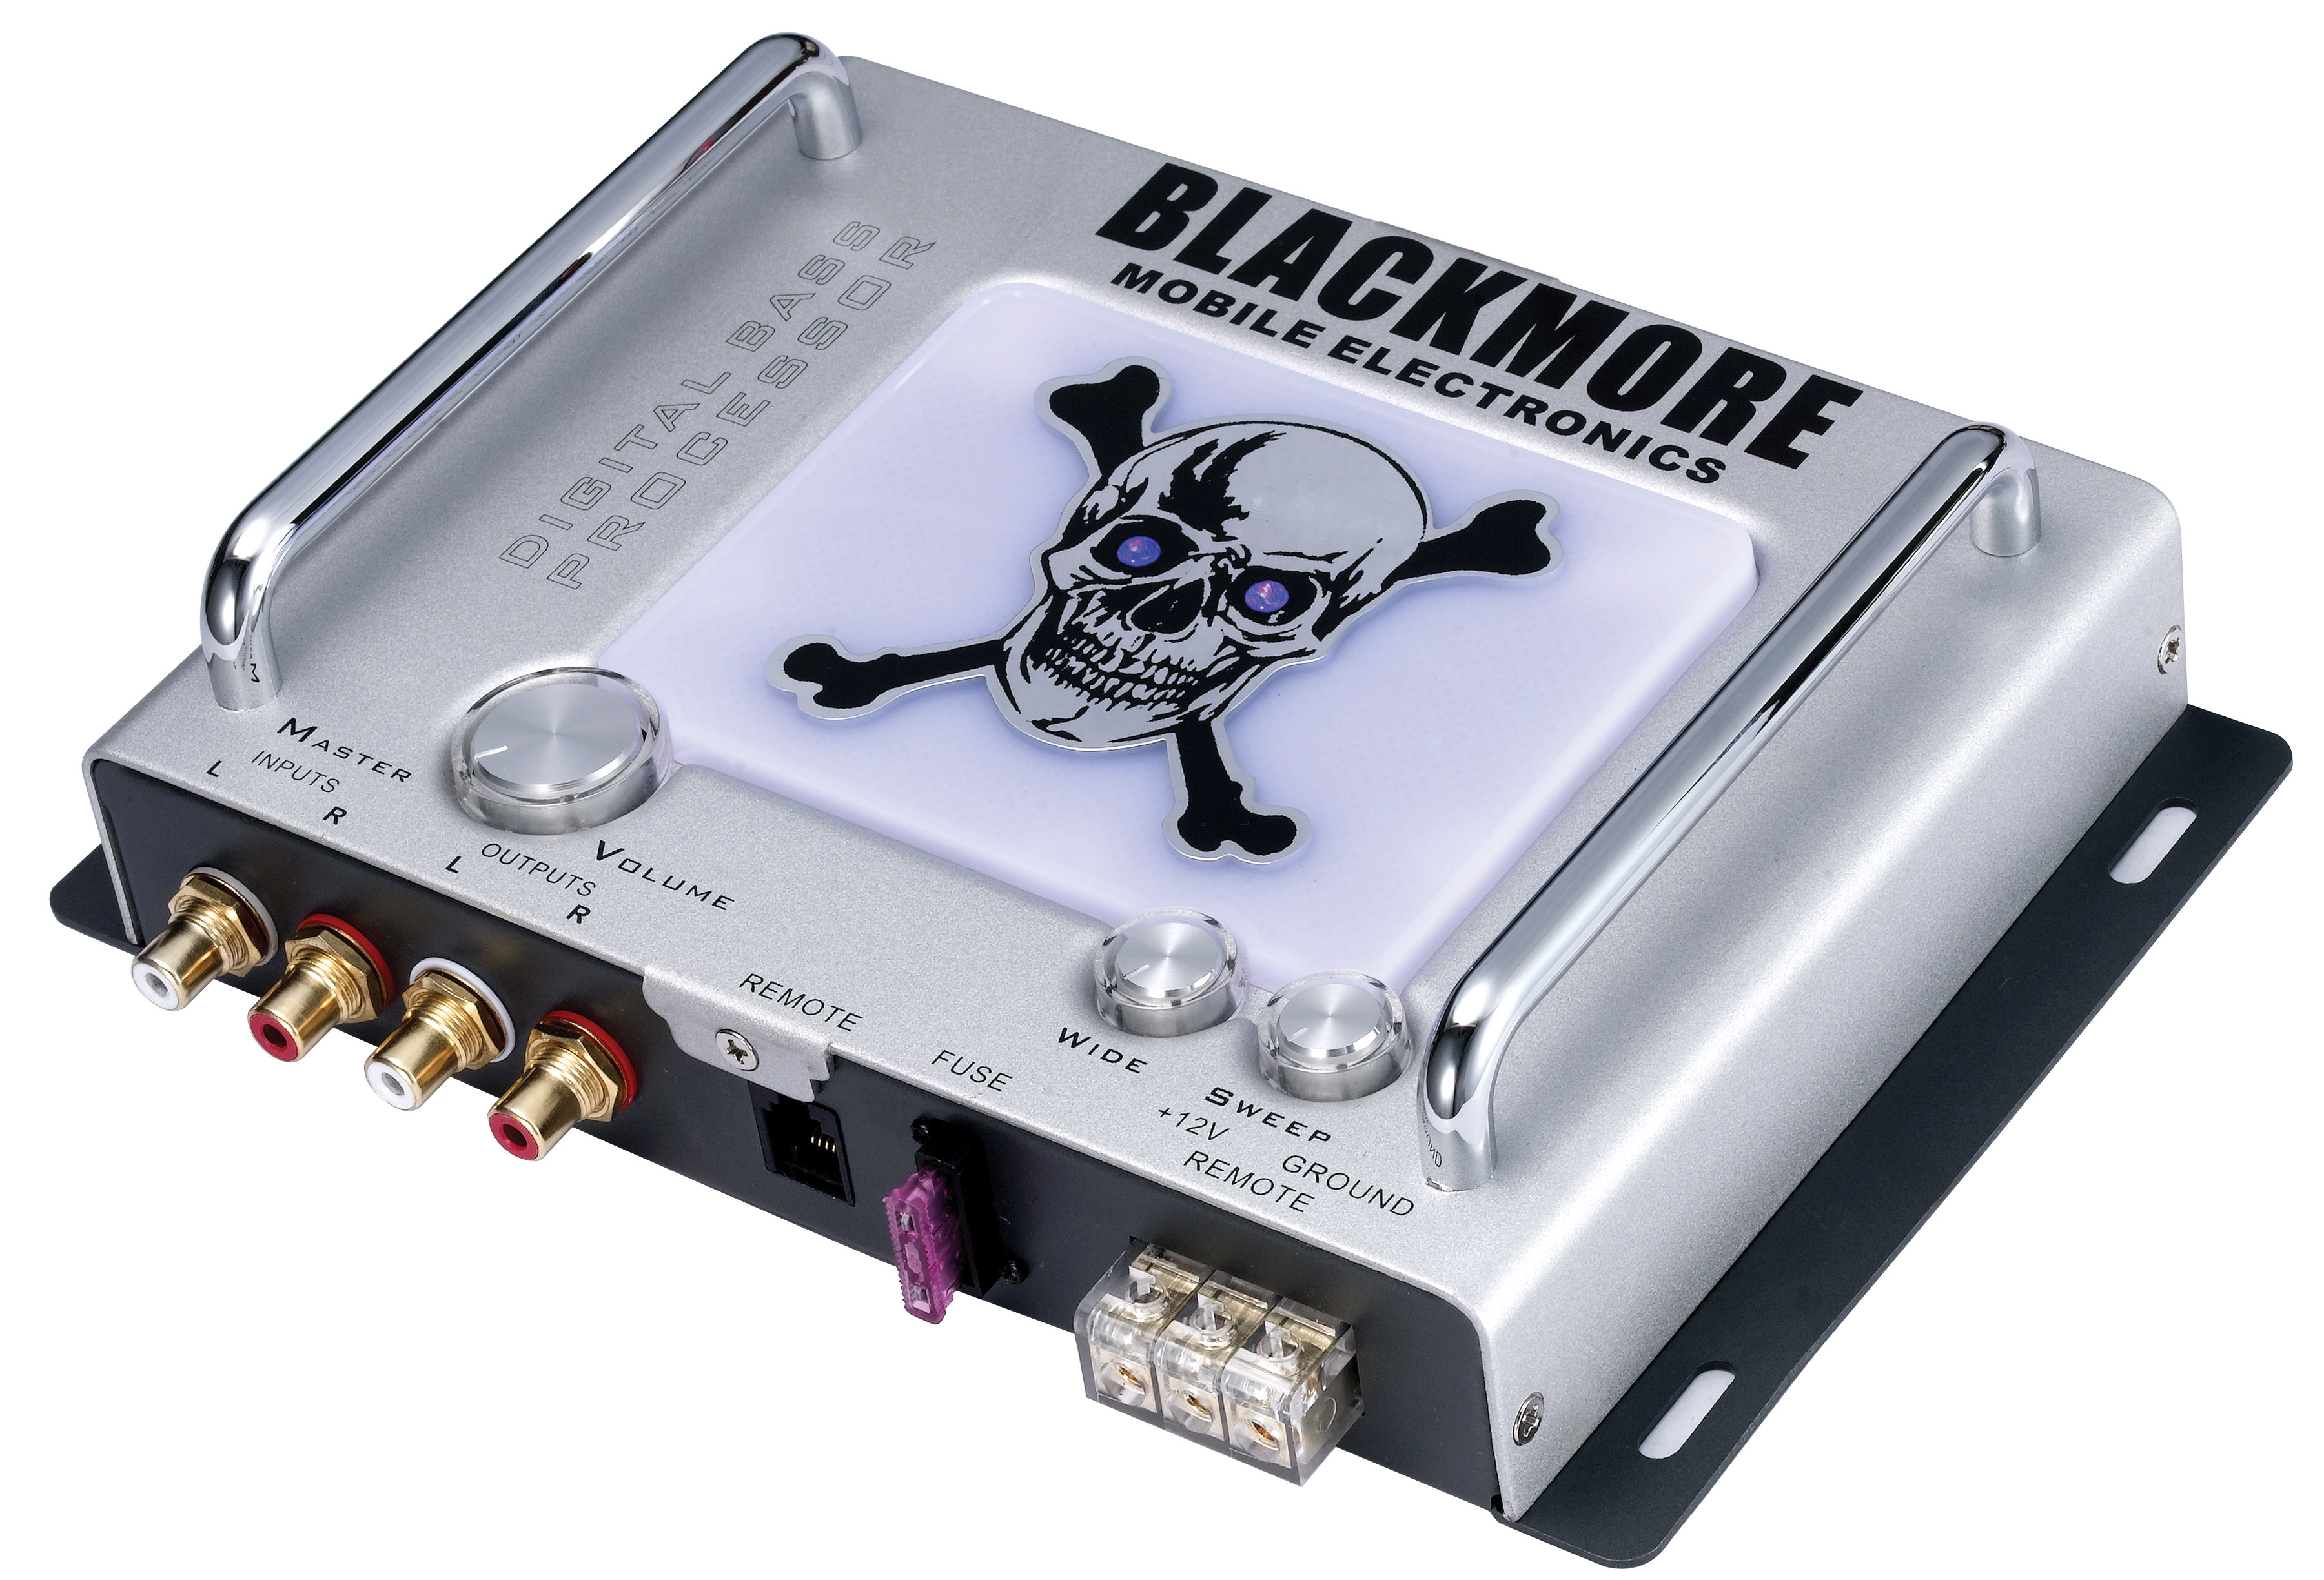 BLACKMORE BB-71 Max Bass Control